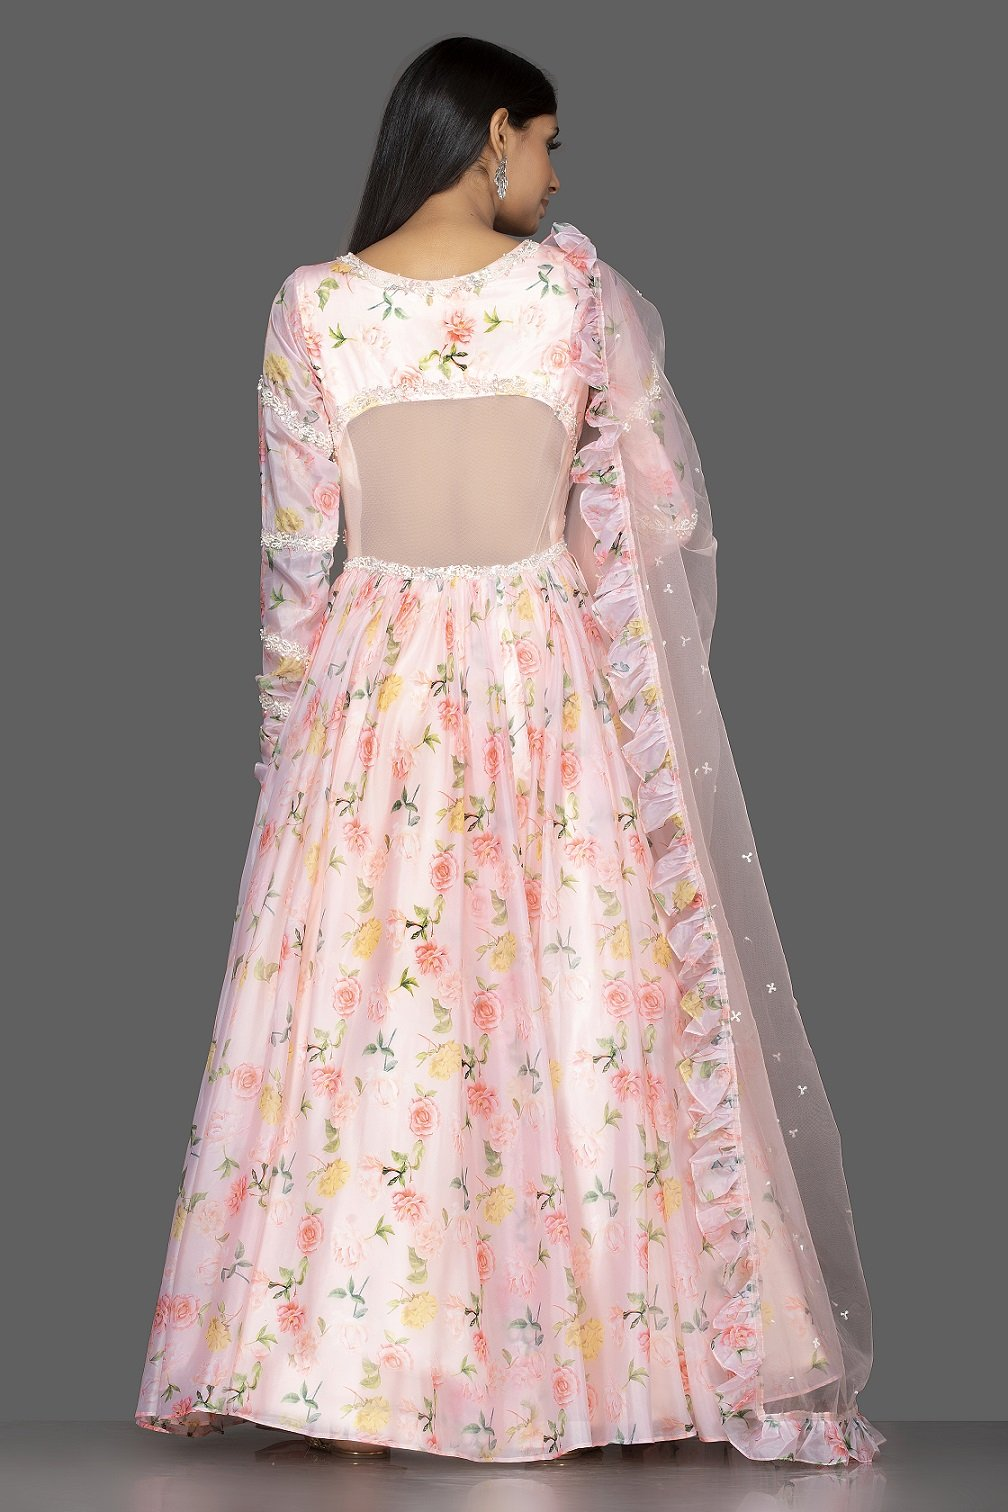 Shop elegant off-white georgette Lucknowi Anarkali online in USA with dupatta. Spread ethnic elegance on weddings and special occasions in splendid designer lehengas, Anarkali suits crafted with exquisite Indian craftsmanship from Pure Elegance Indian fashion store in USA.-back